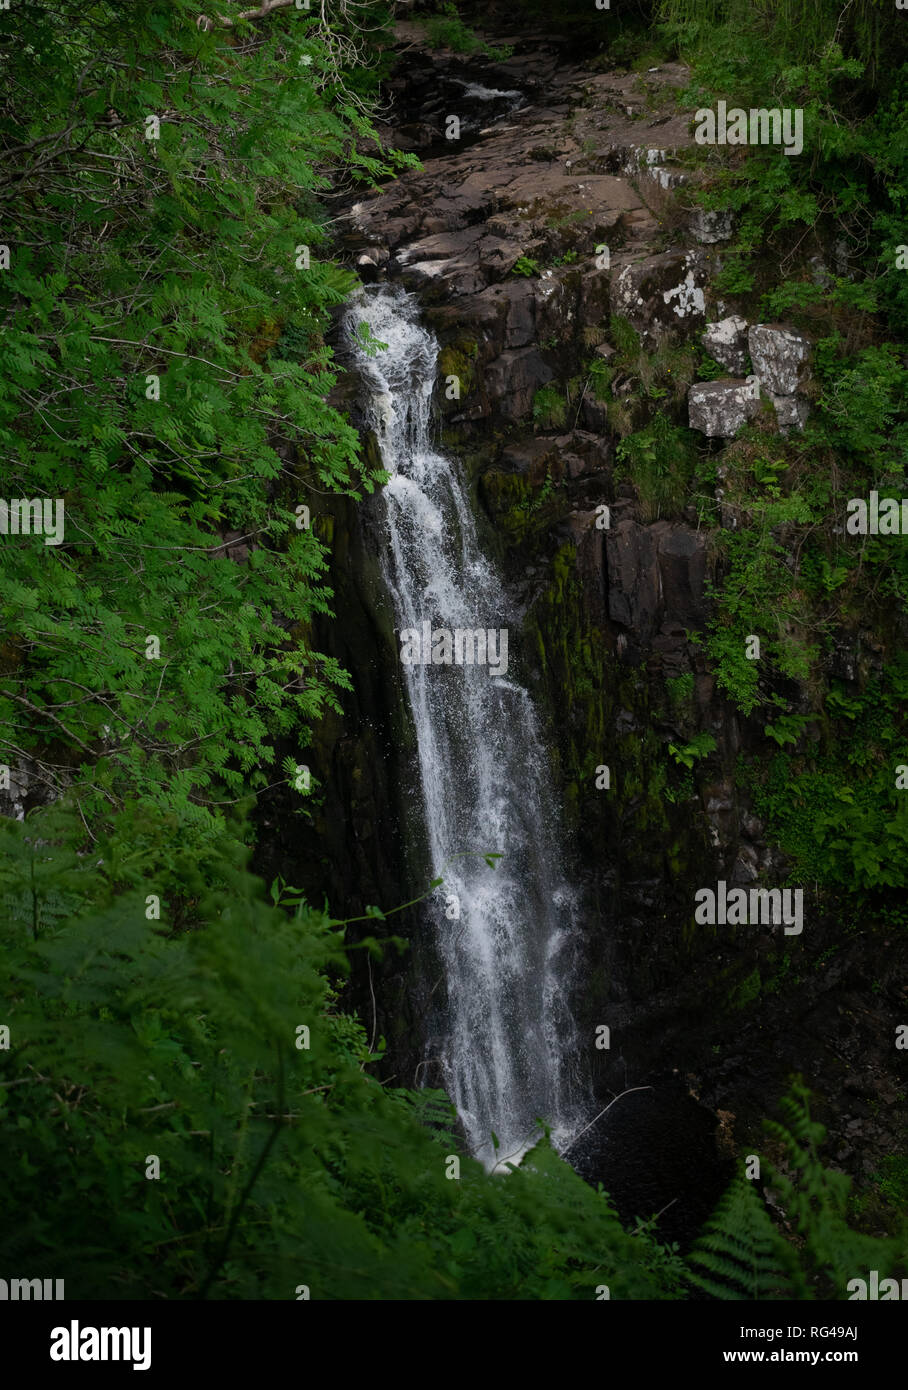 Leaves reaching out to grab a waterfall - Stock Image